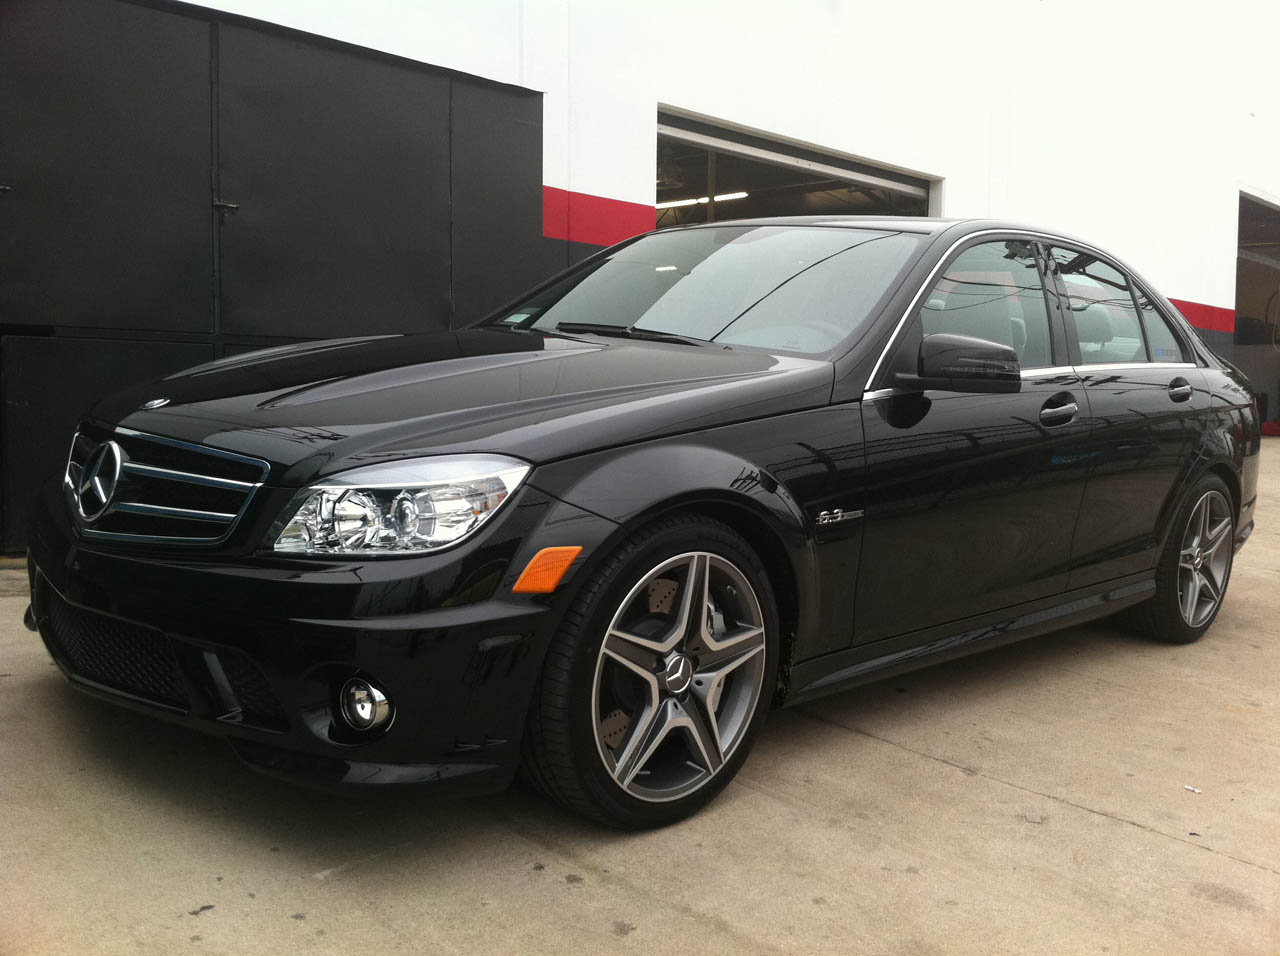 1 4 Mile Times >> 2011 Mercedes-Benz C63 AMG OE Tuning, Gintani Stg1 Exhaust, Street Tire 1/4 mile Drag Racing ...